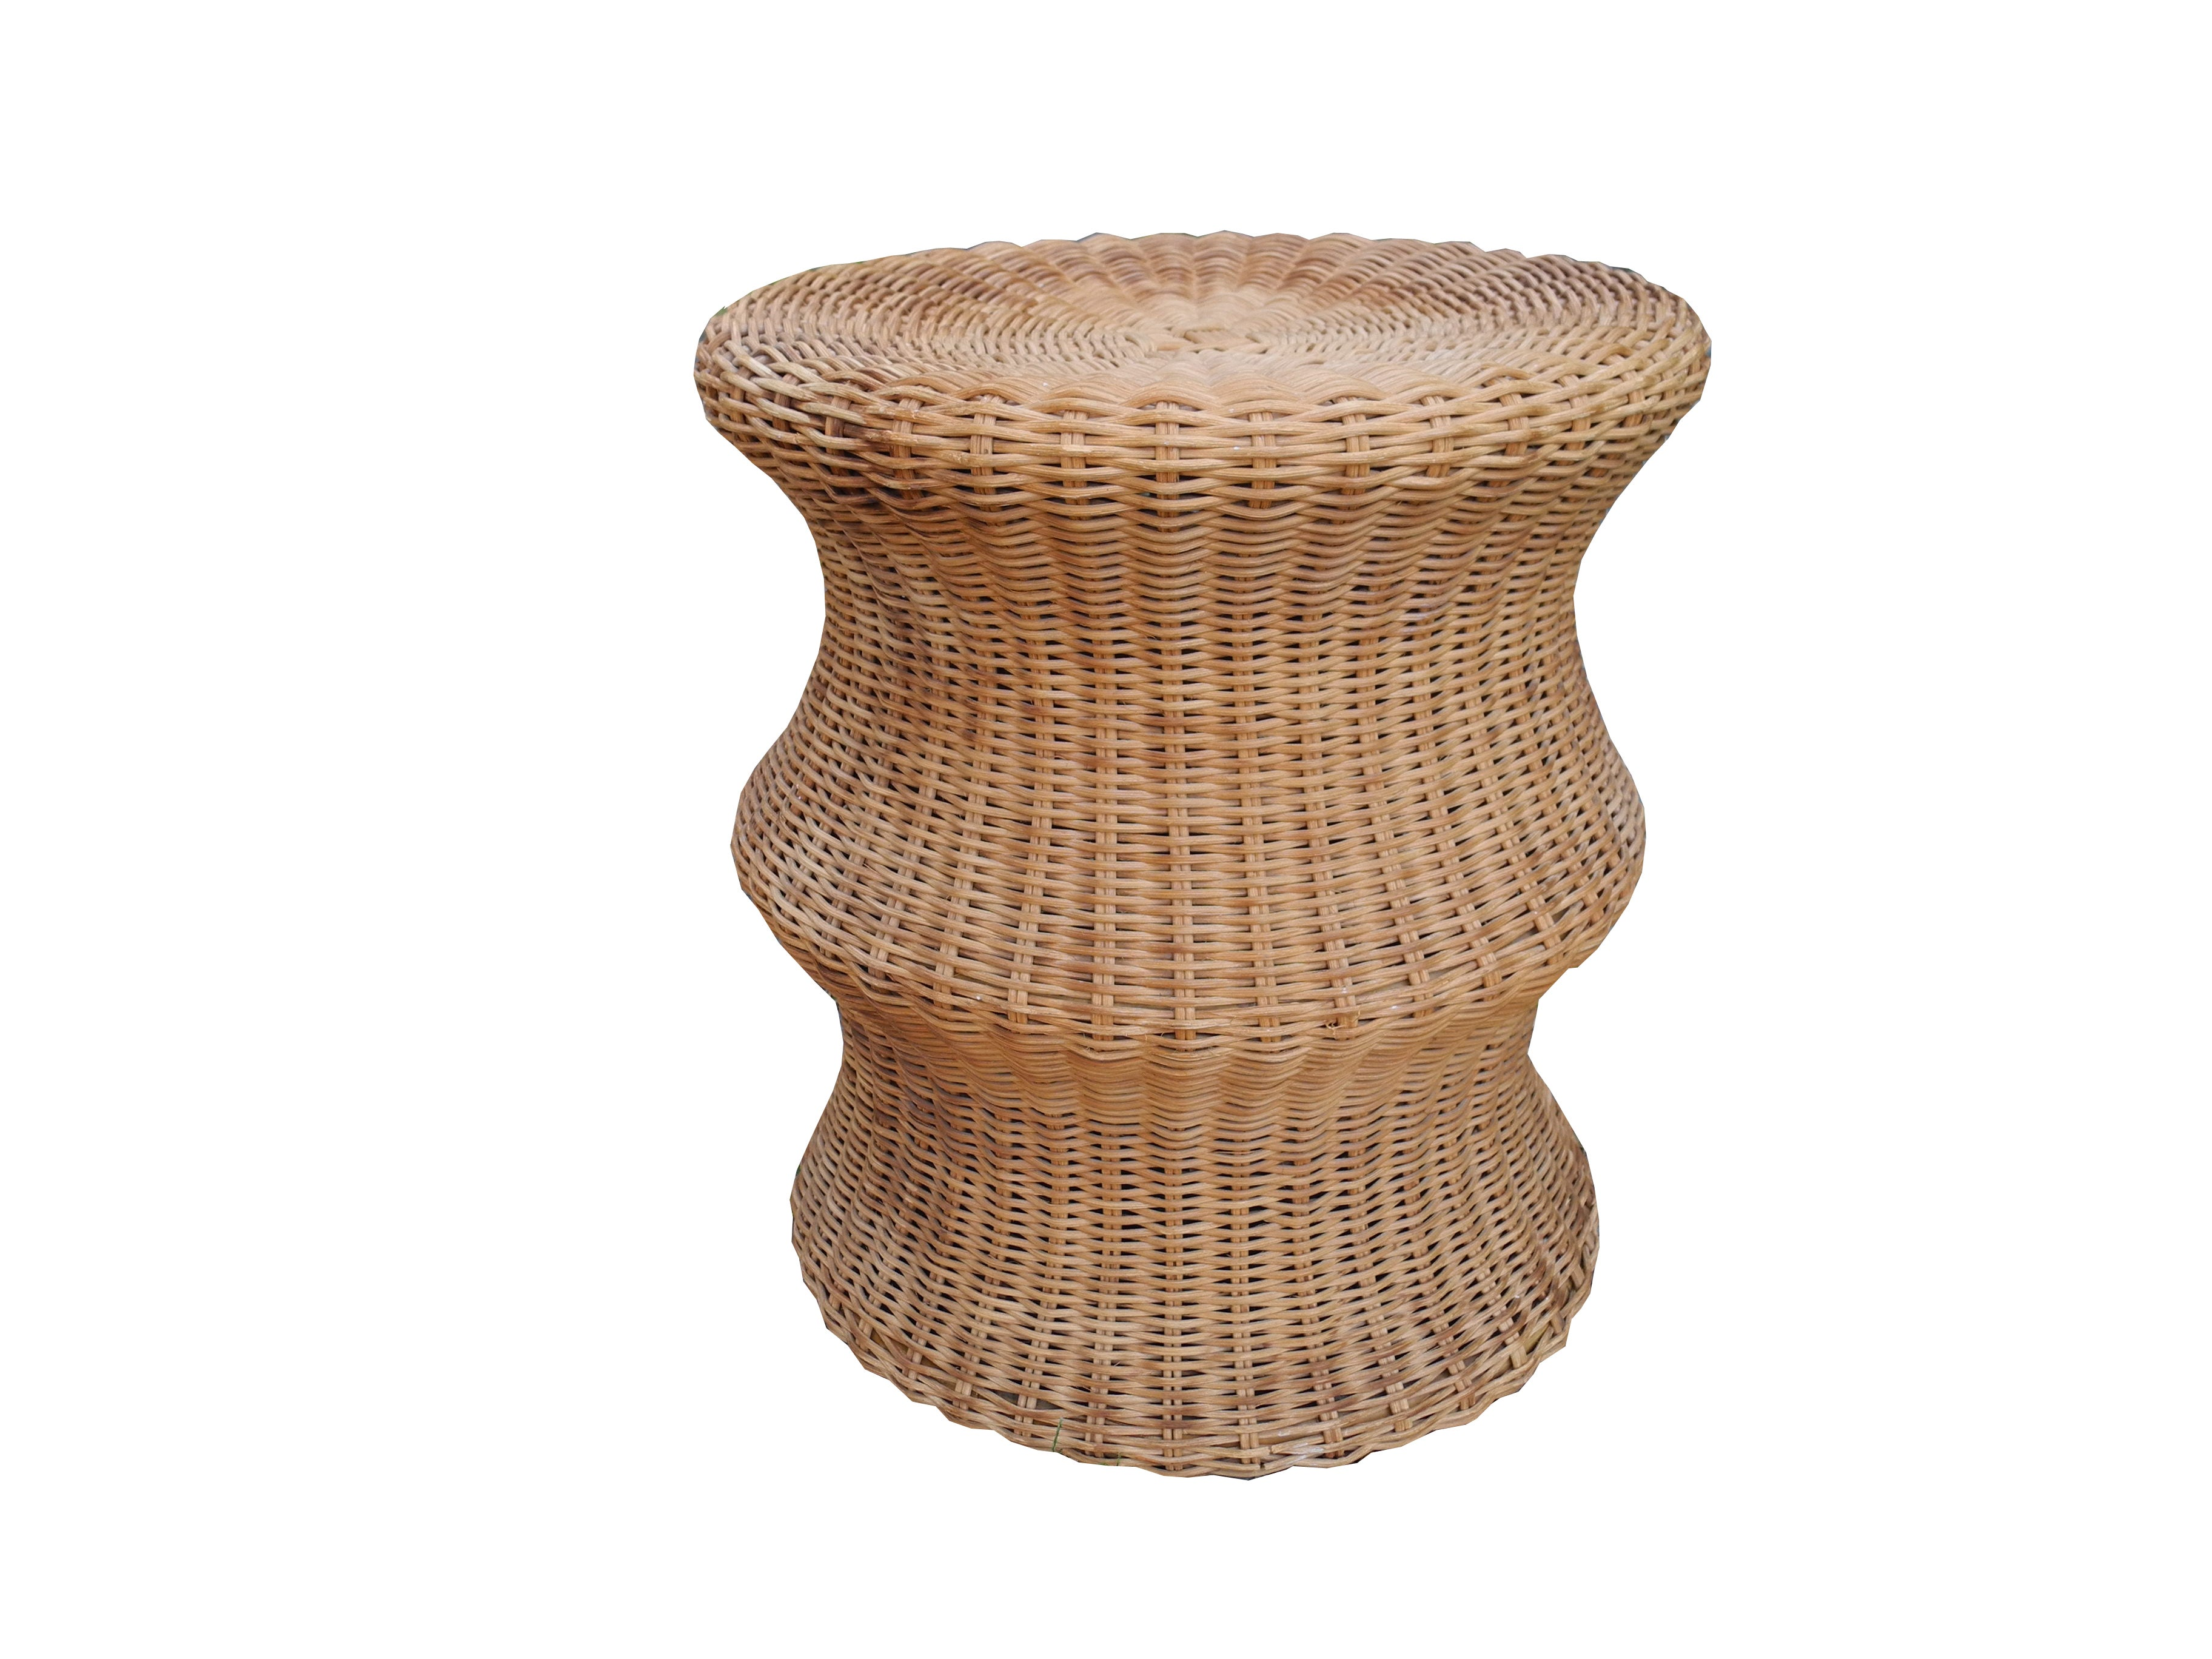 Mid Century Modern Wicker Stool or Side Table by Eero Aarnio for